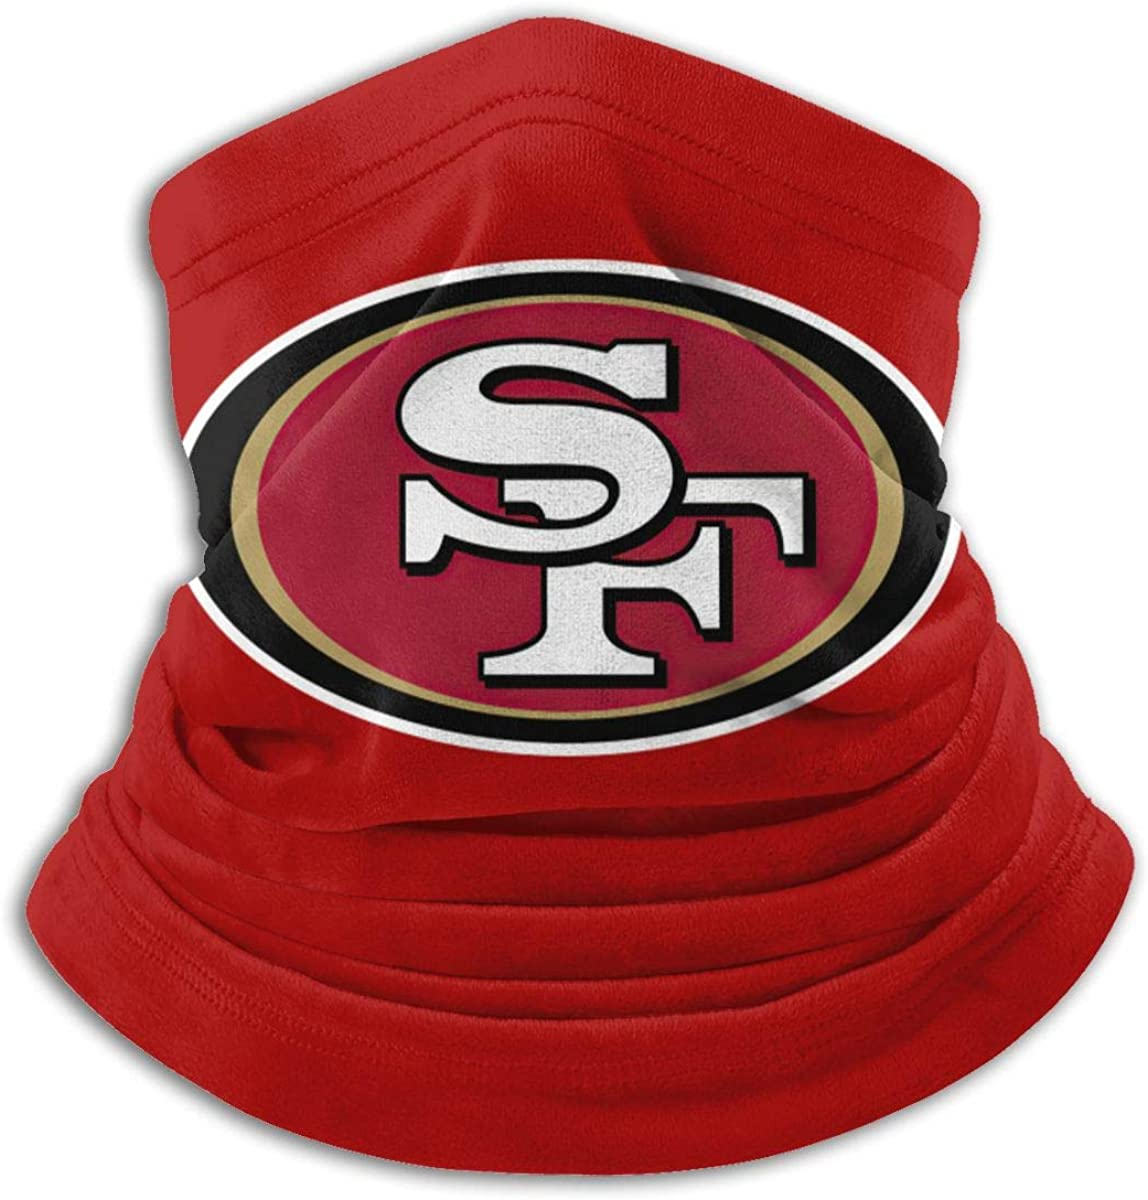 G-III Sports Face Shield Bandanas American Football Team Neck Warmer for Cold Weather